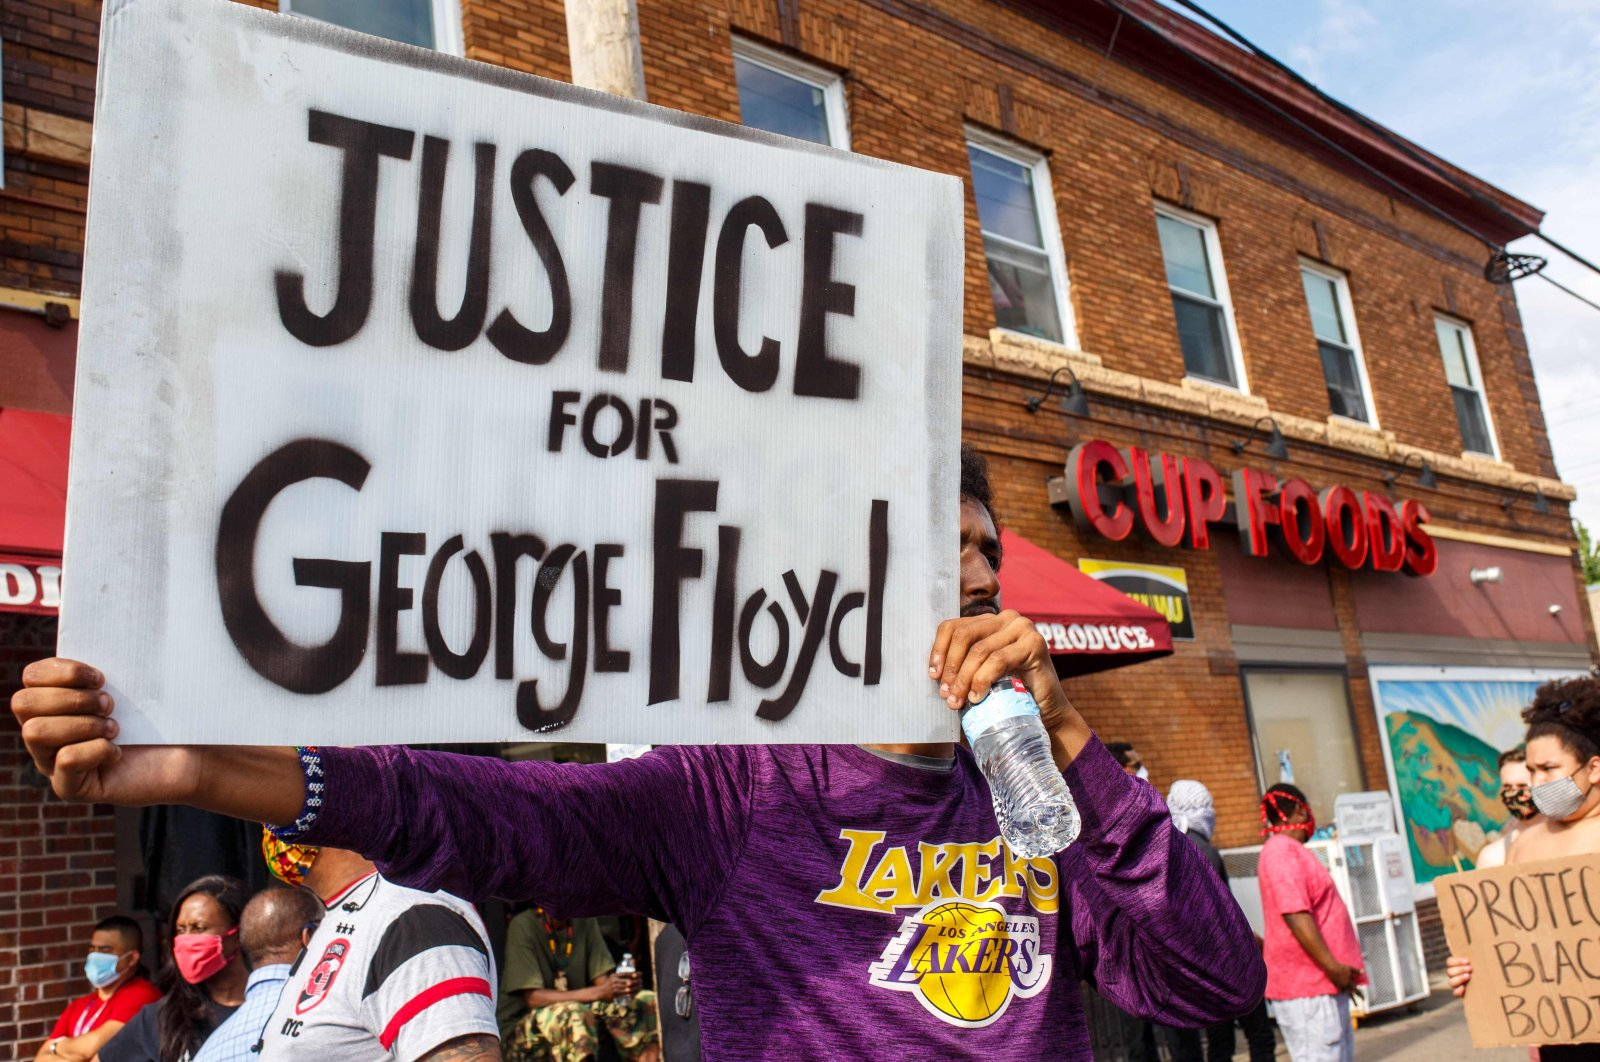 A man holds a sign while protesting near the area where a Minneapolis Police Department officer caused the death of George Floyd, Minneapolis, Minnesota, U.S., May 26, 2020. (AFP Photo)